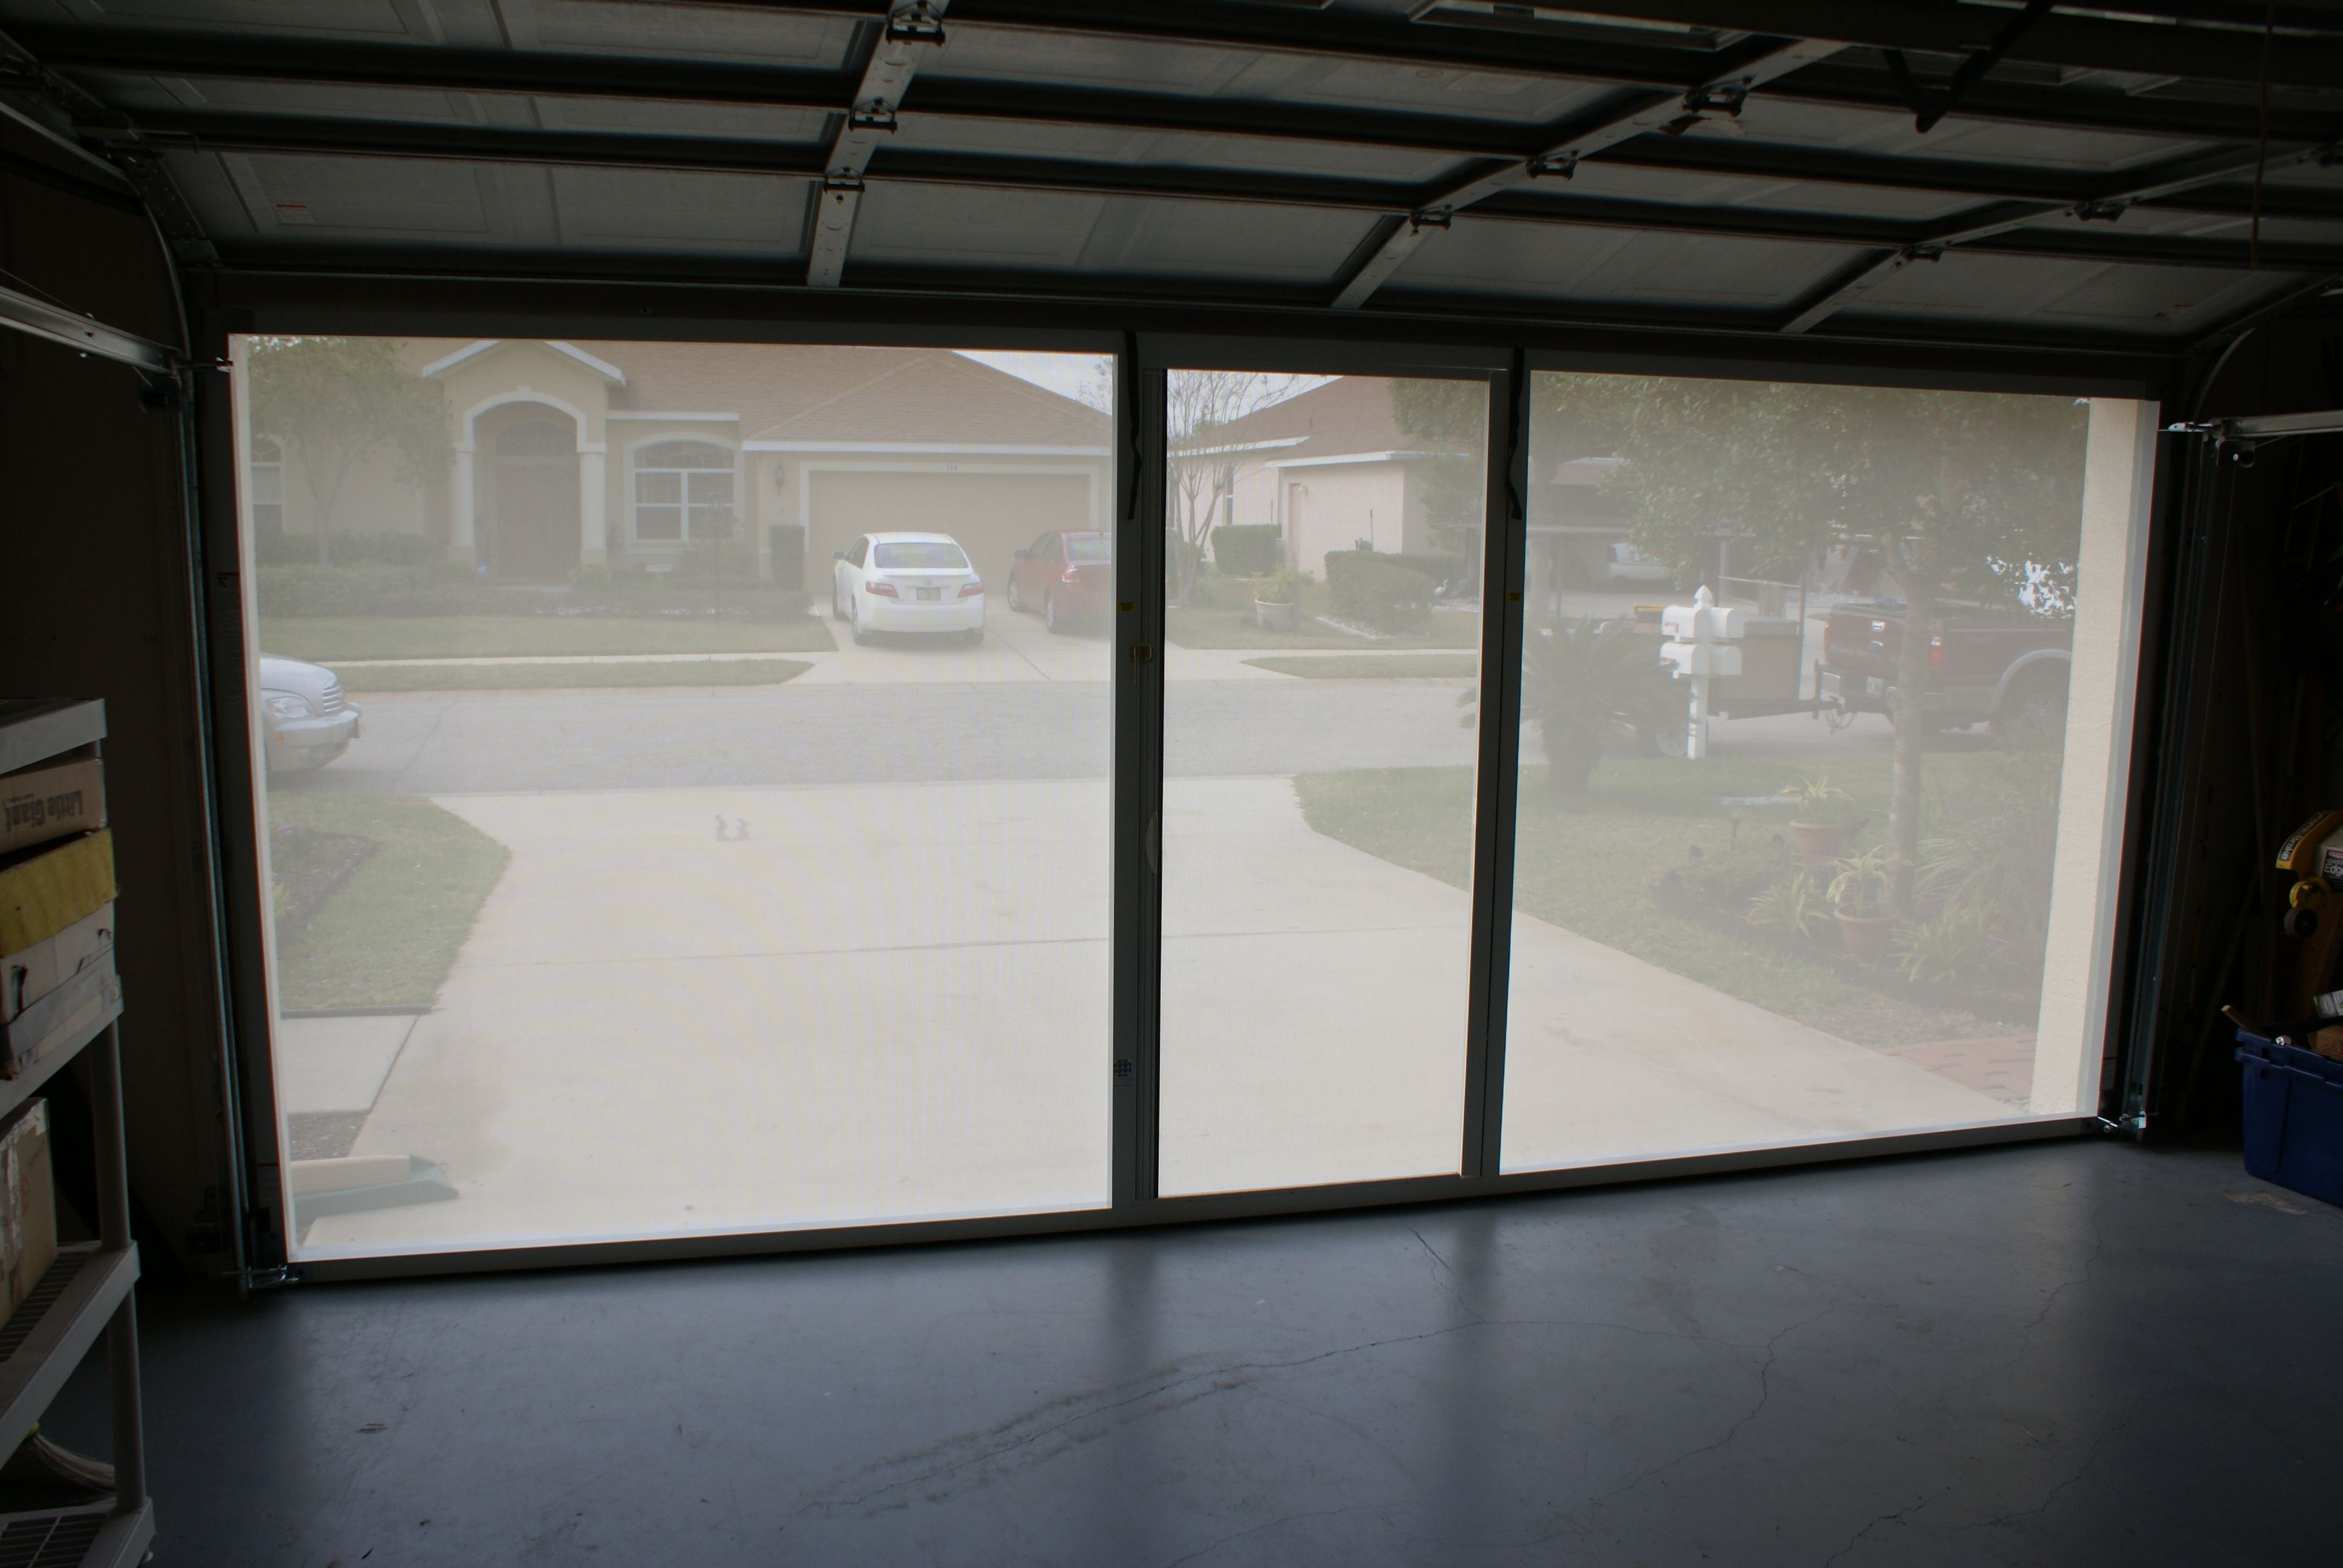 Screen Door For Garage With Privacy Privacy Screen Outdoor Diy Privacy Screen Outdoor Privacy